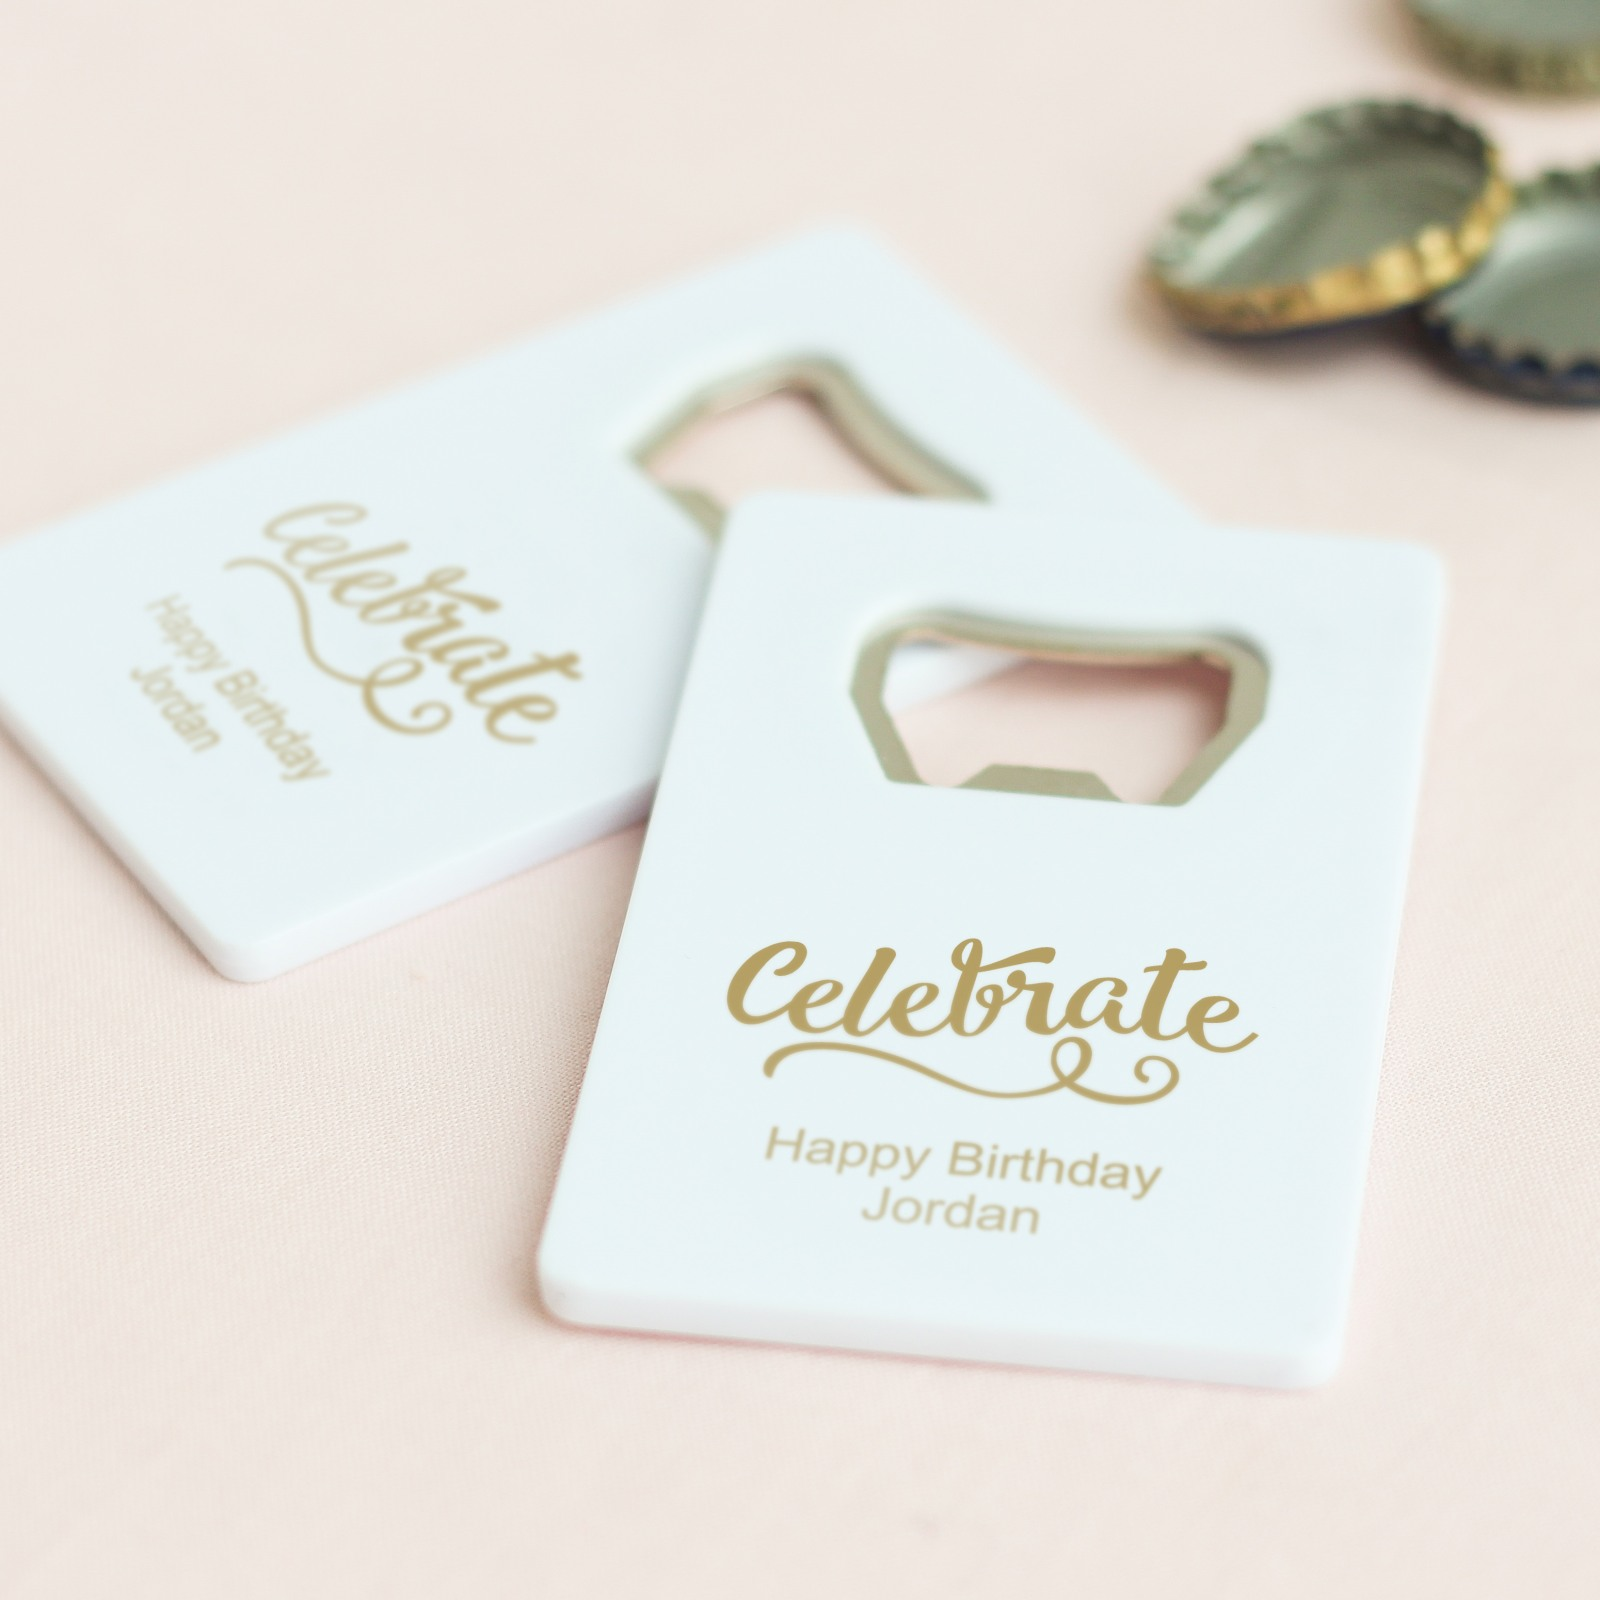 Personalized Celebrate Credit Card Bottle Opener Favors